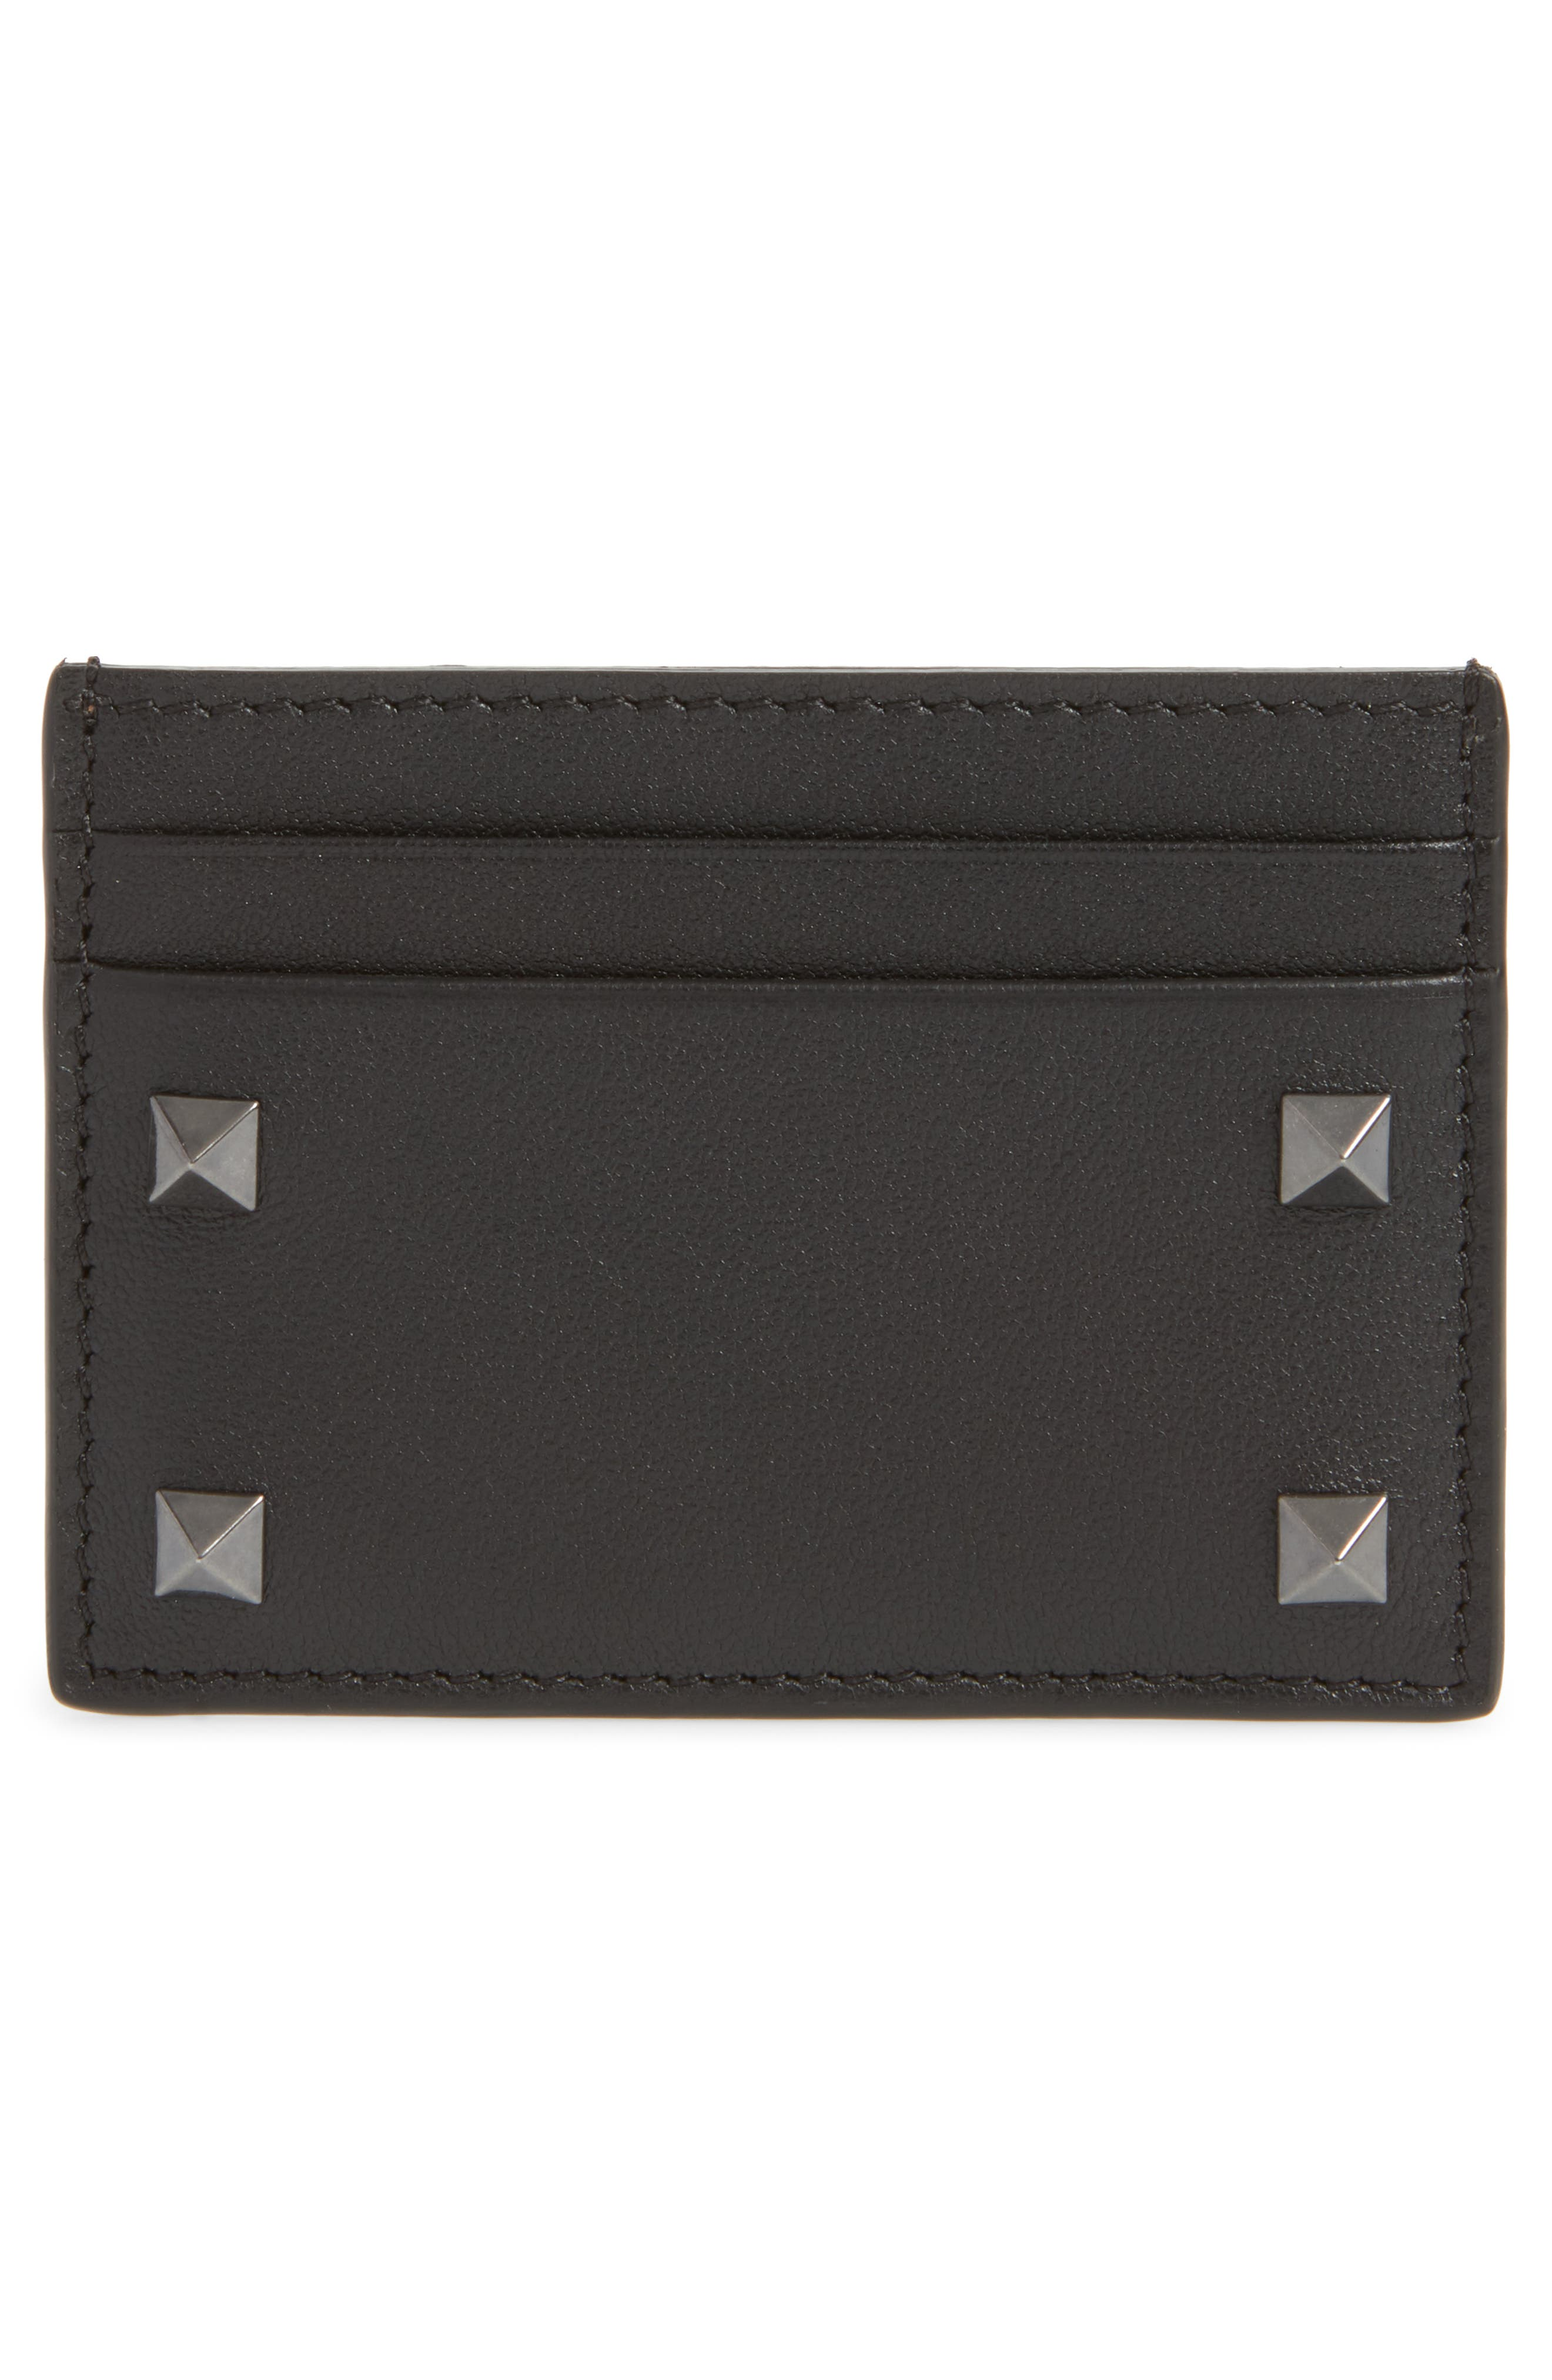 GARAVANI Stud Leather Card Case,                         Main,                         color, BLACK